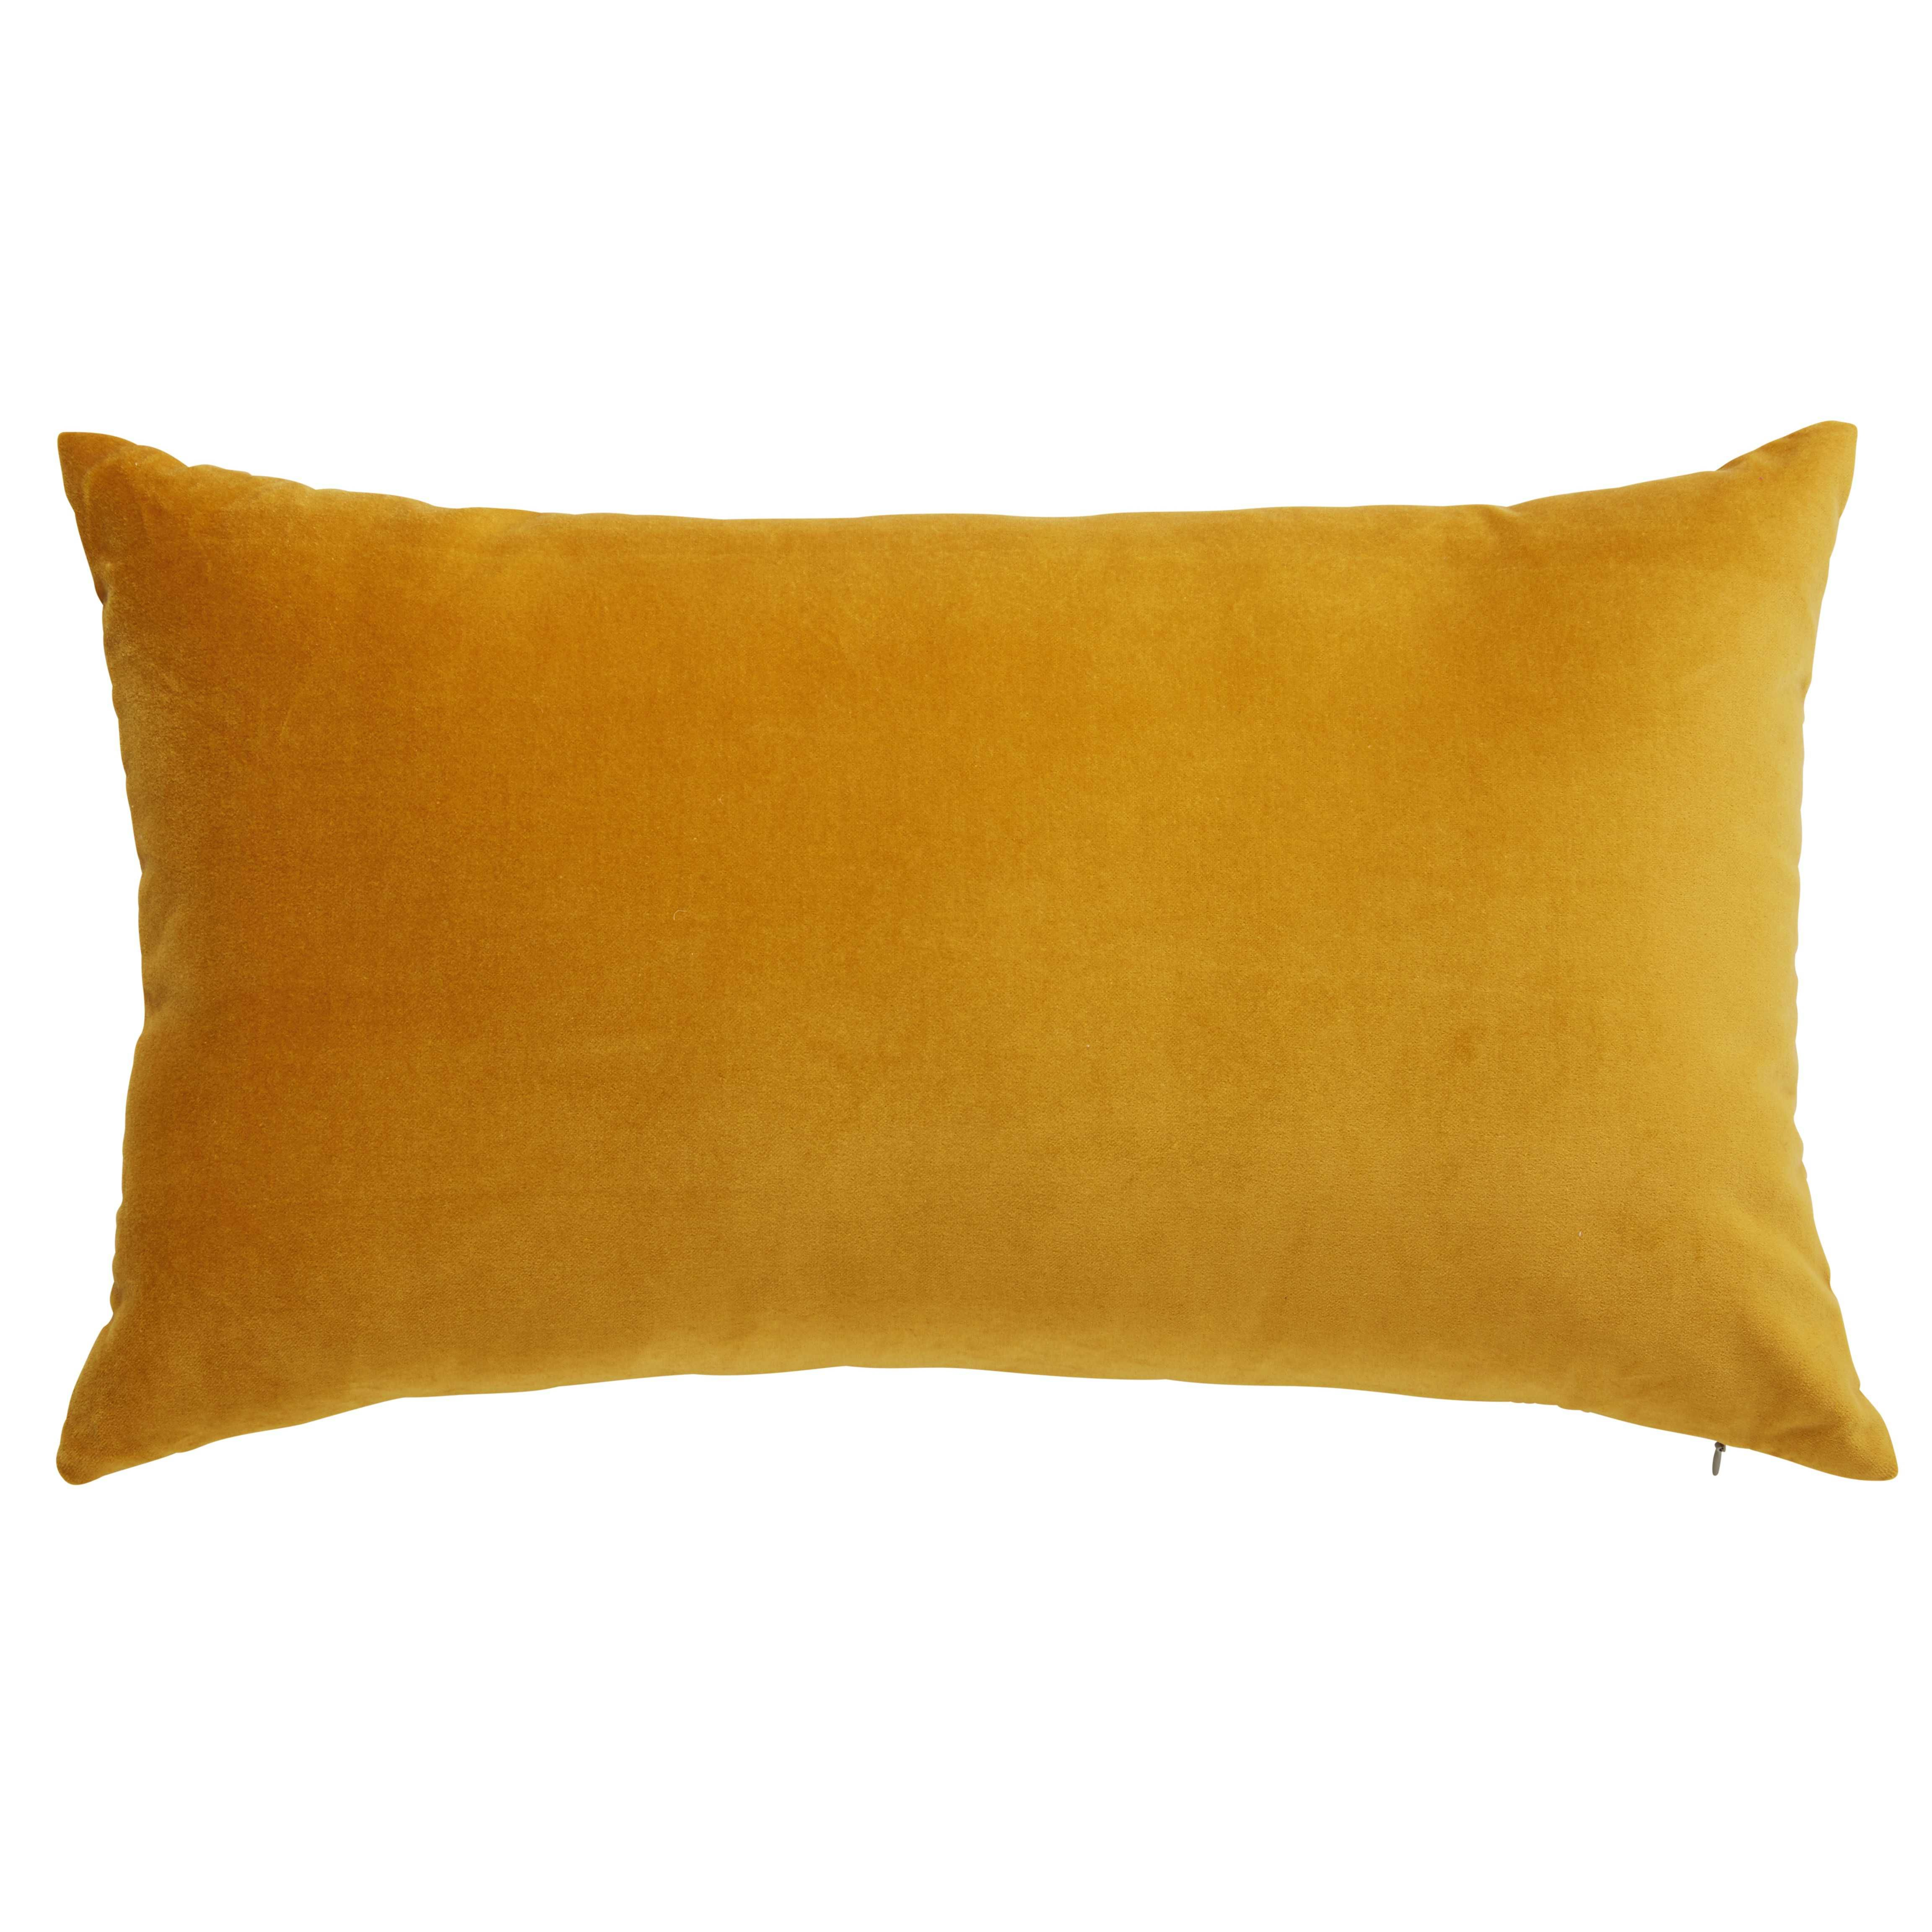 coussin en velours jaune moutarde 30x50cm moutarde. Black Bedroom Furniture Sets. Home Design Ideas